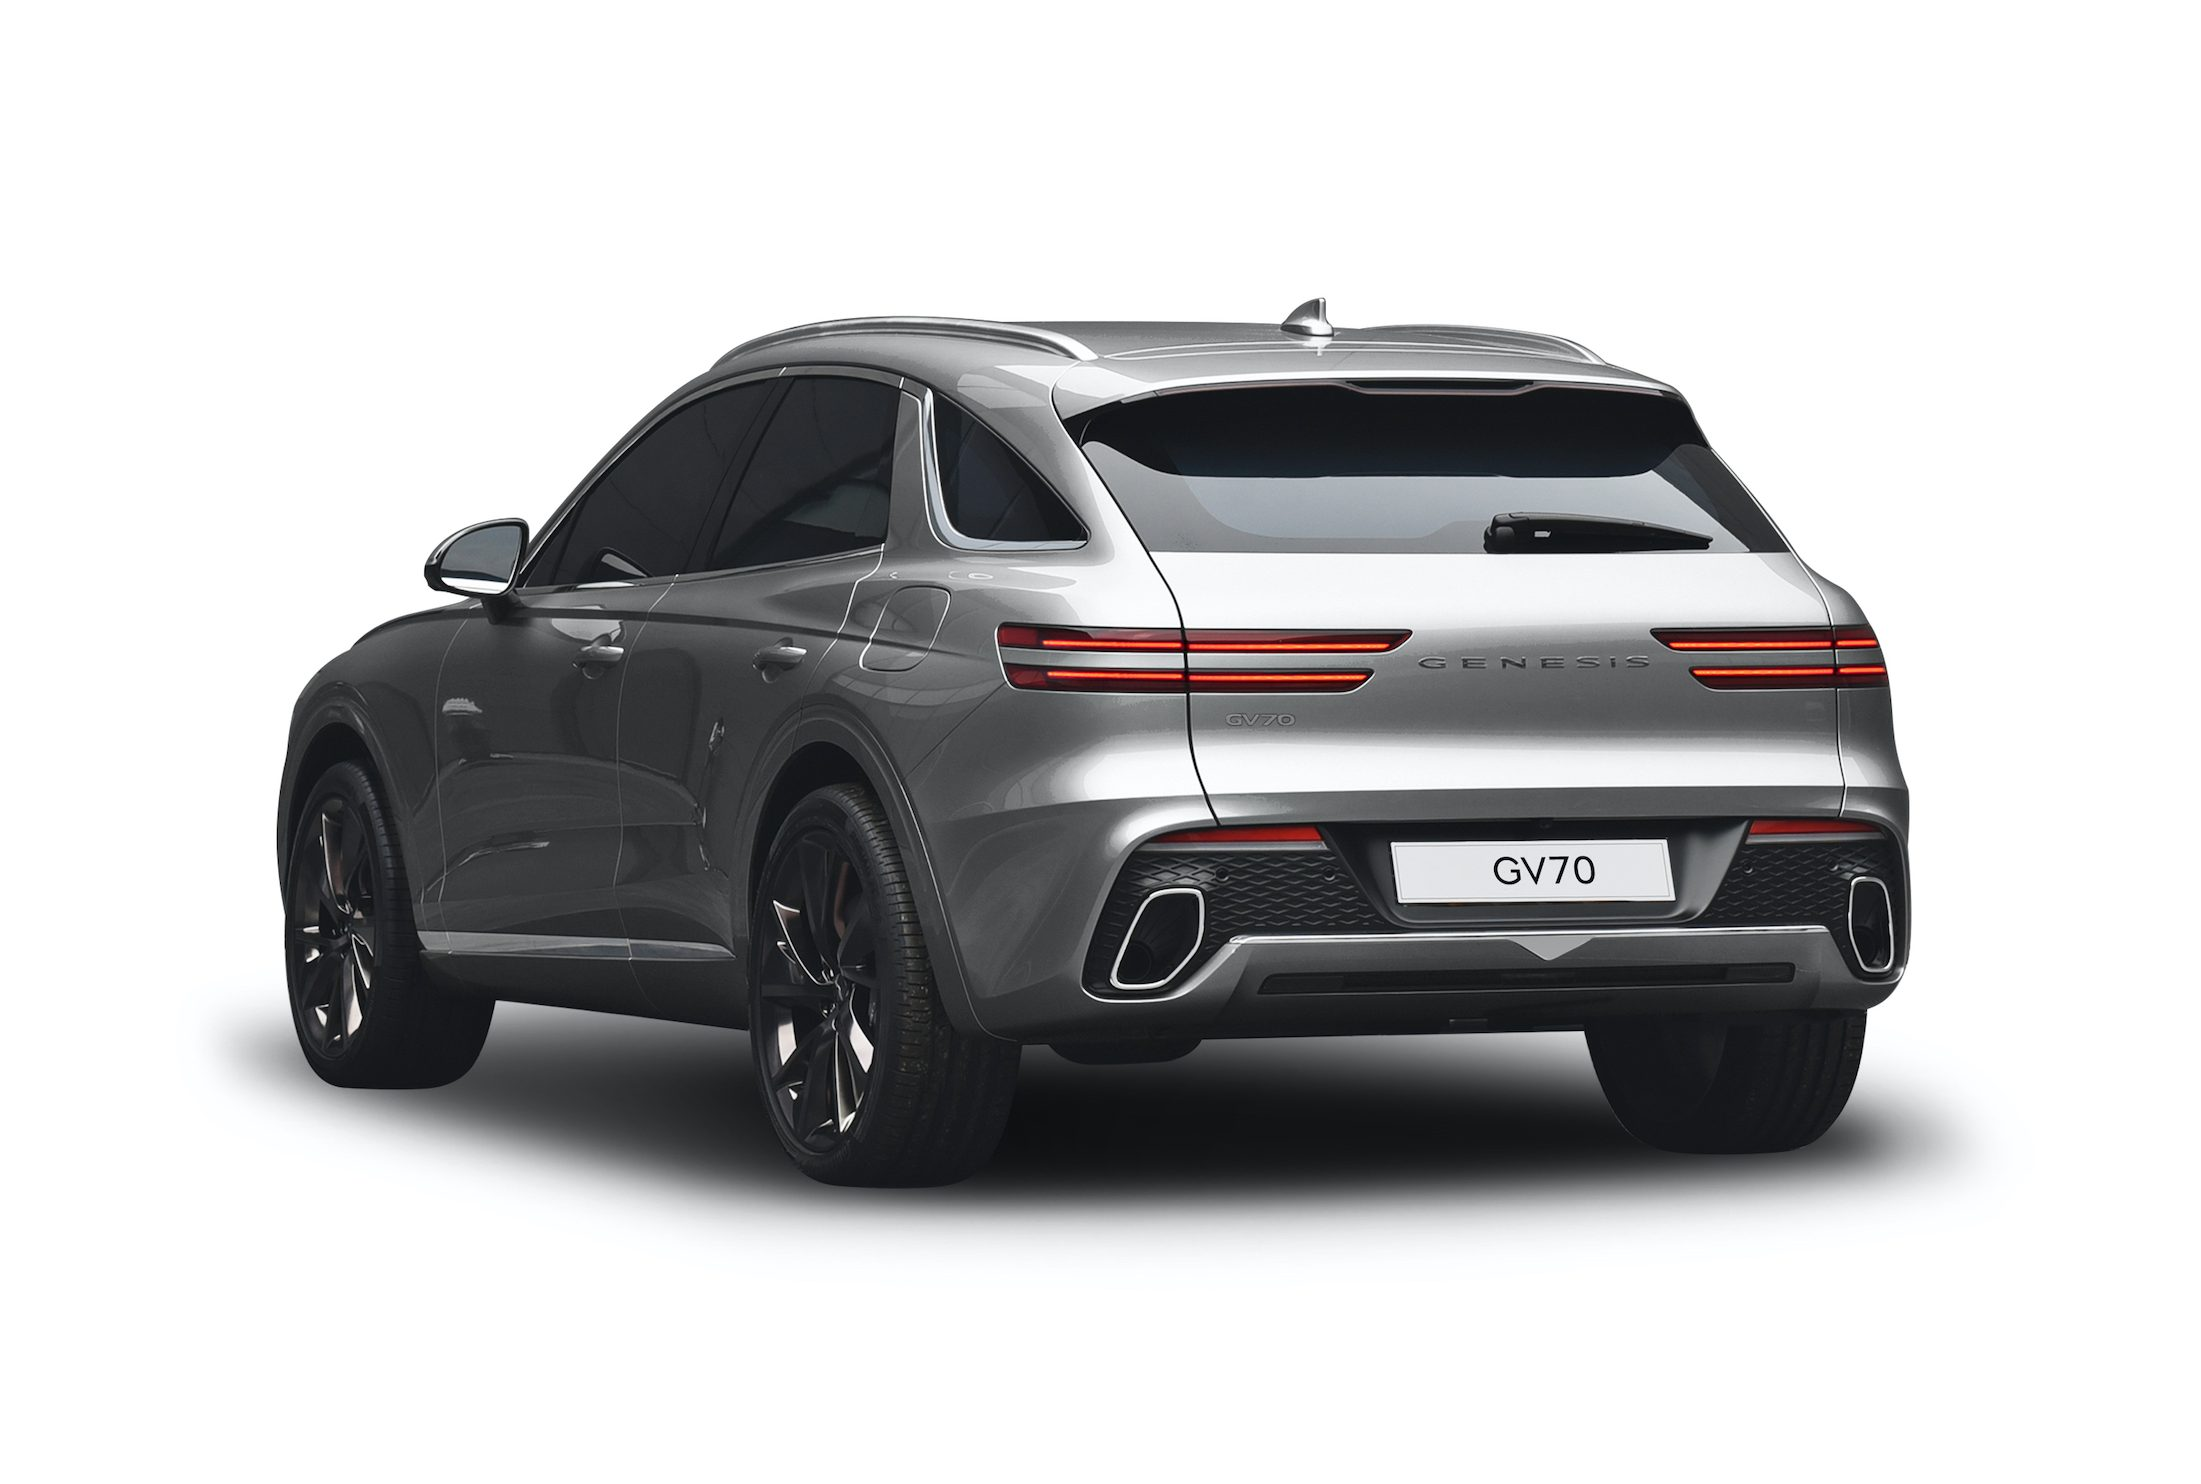 Genesis GV70 rear three-quarter